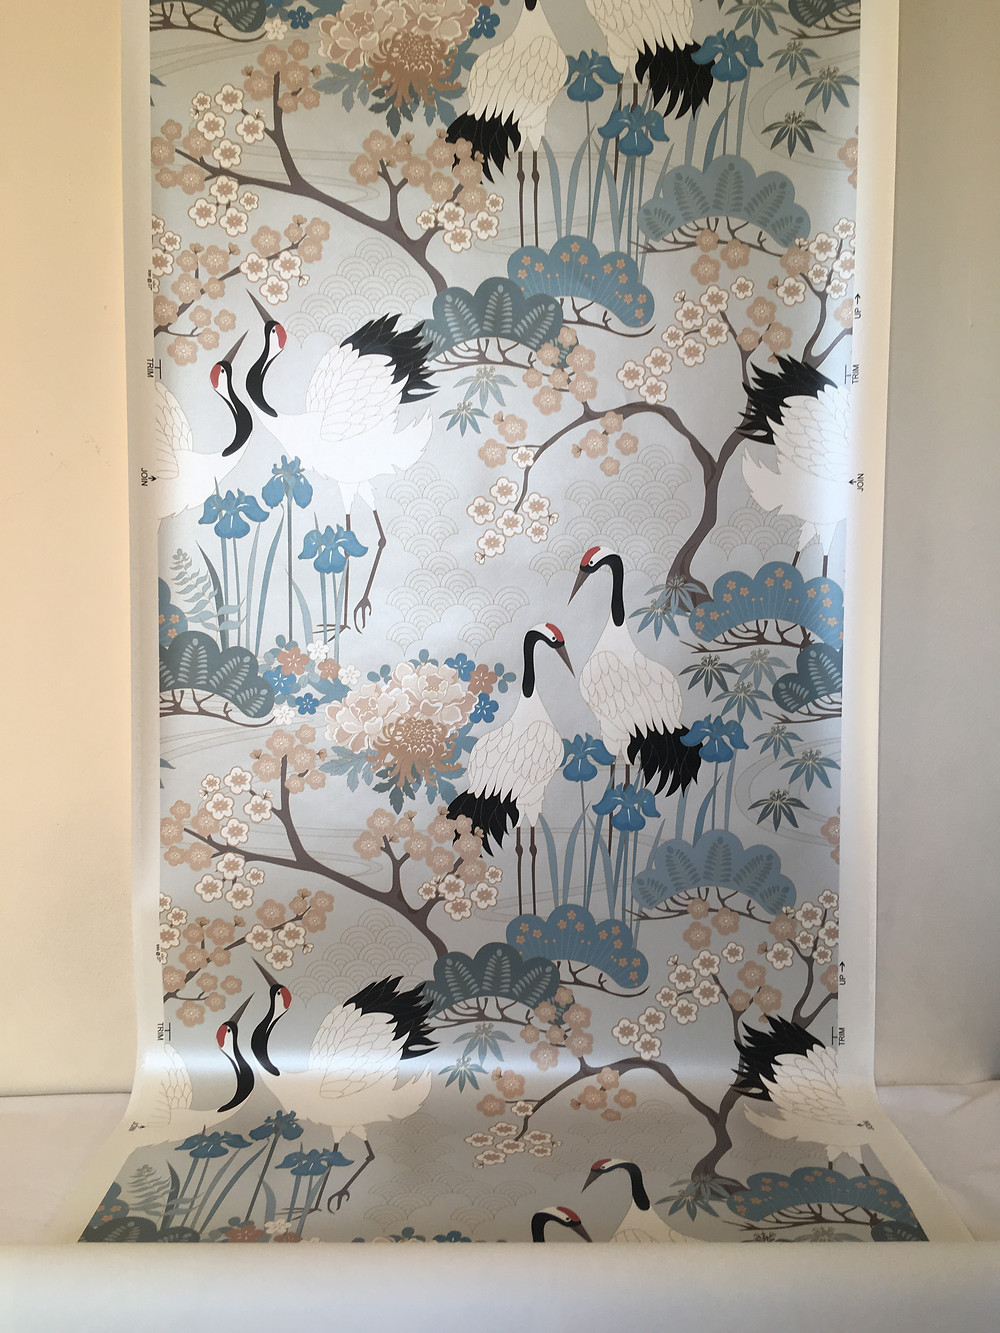 Japanese Garden in Gray wallcovering from Judit Gueth Design on sale